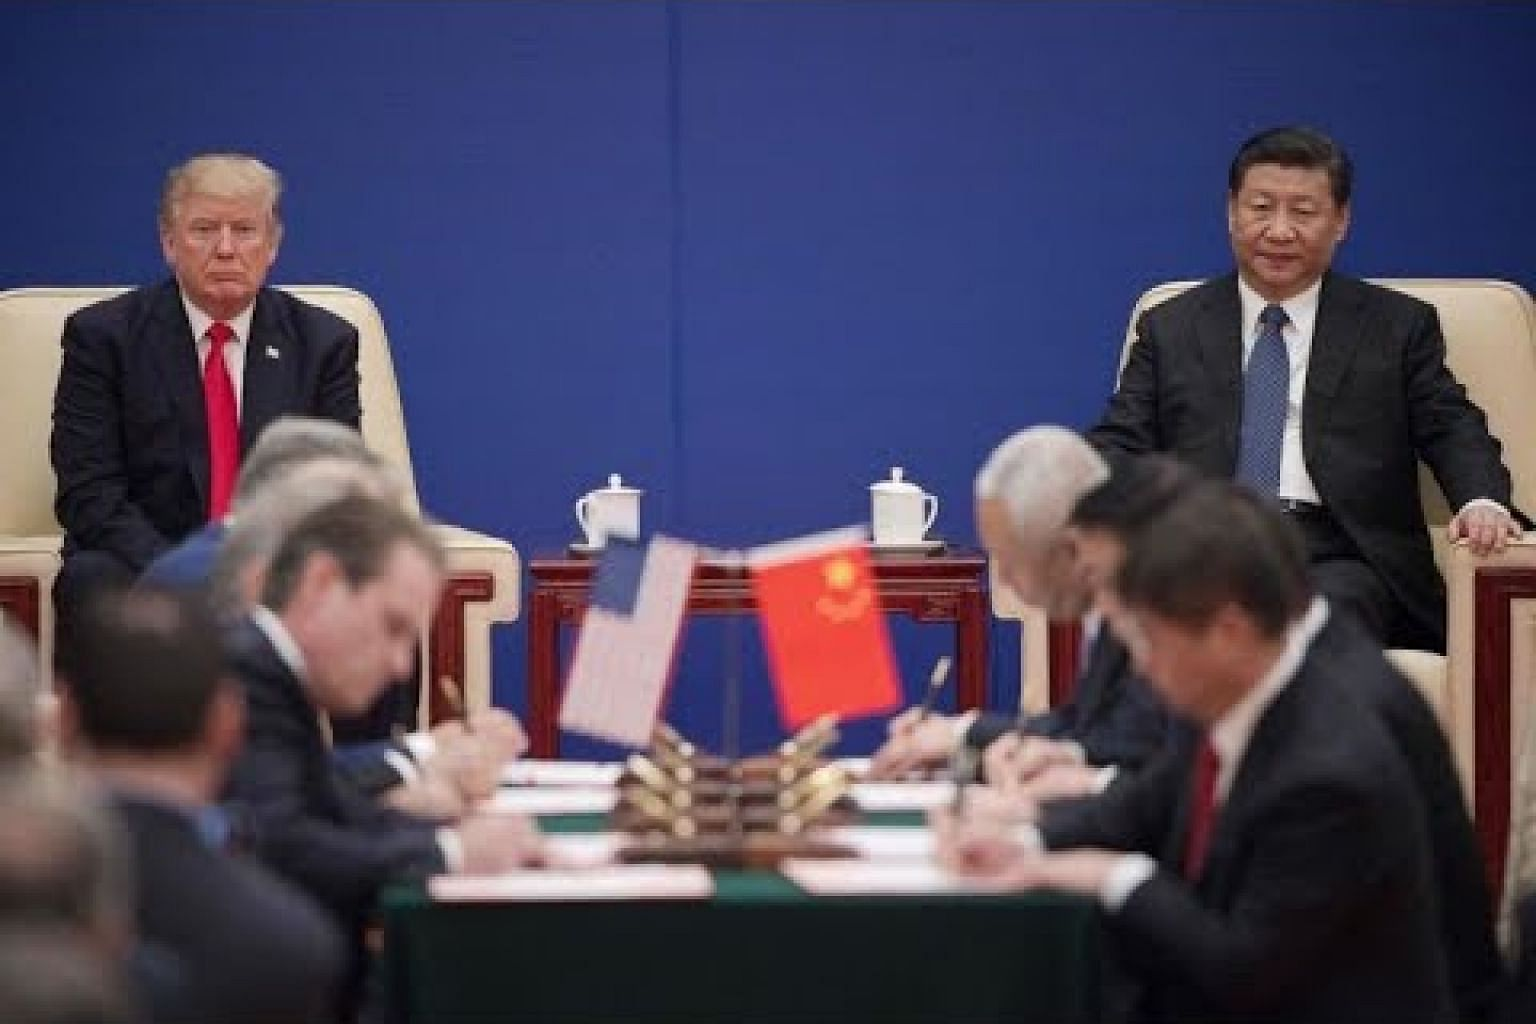 A new cold war? US and China's power play